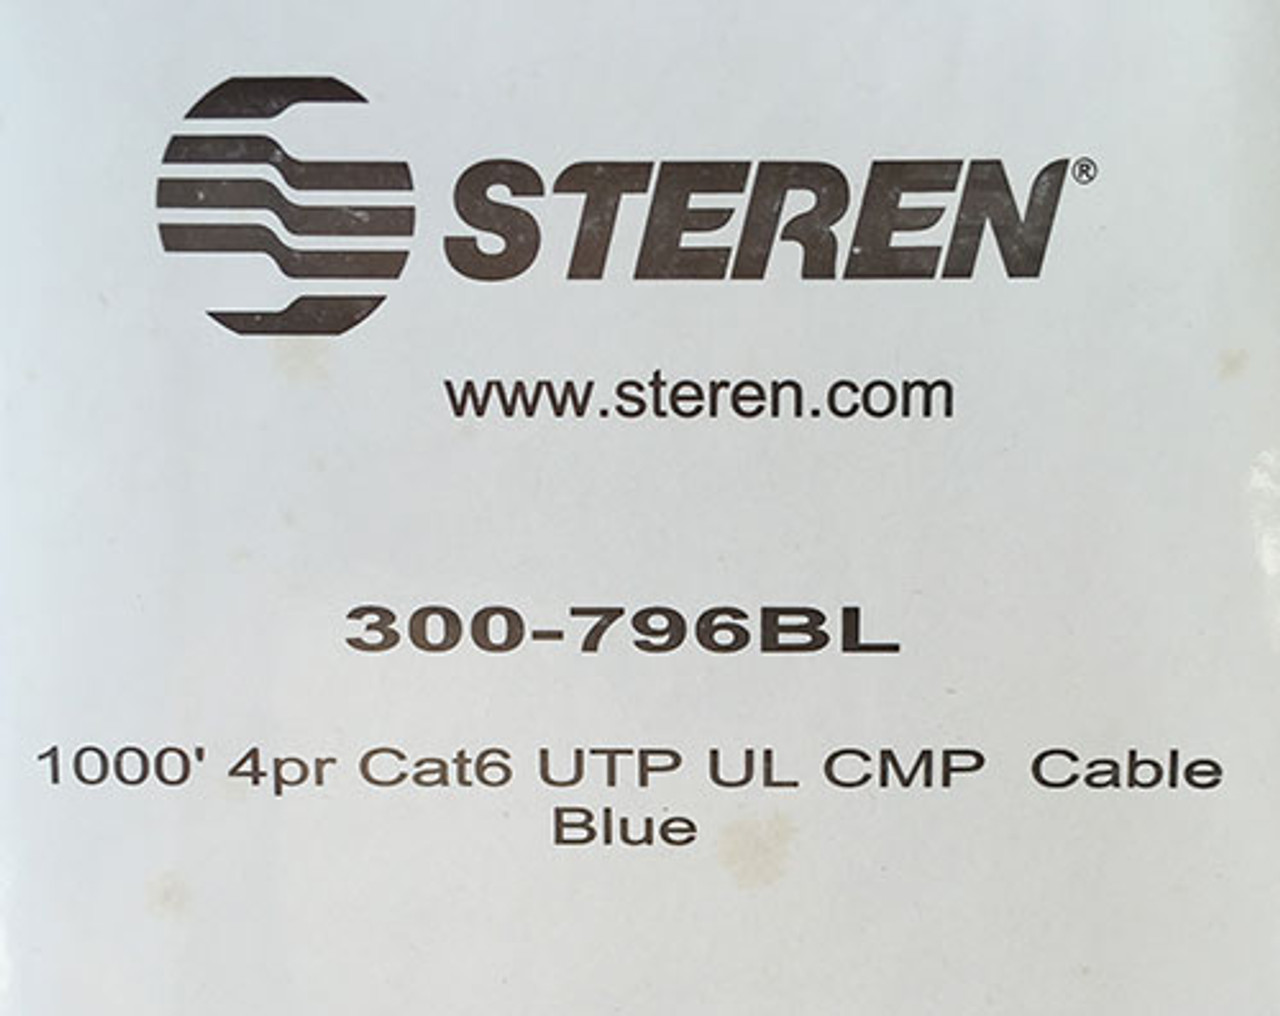 Steren 300-796BL Category 6 Unshielded Plenum Cable 4 Pair UTP UL Blue 1000' - New